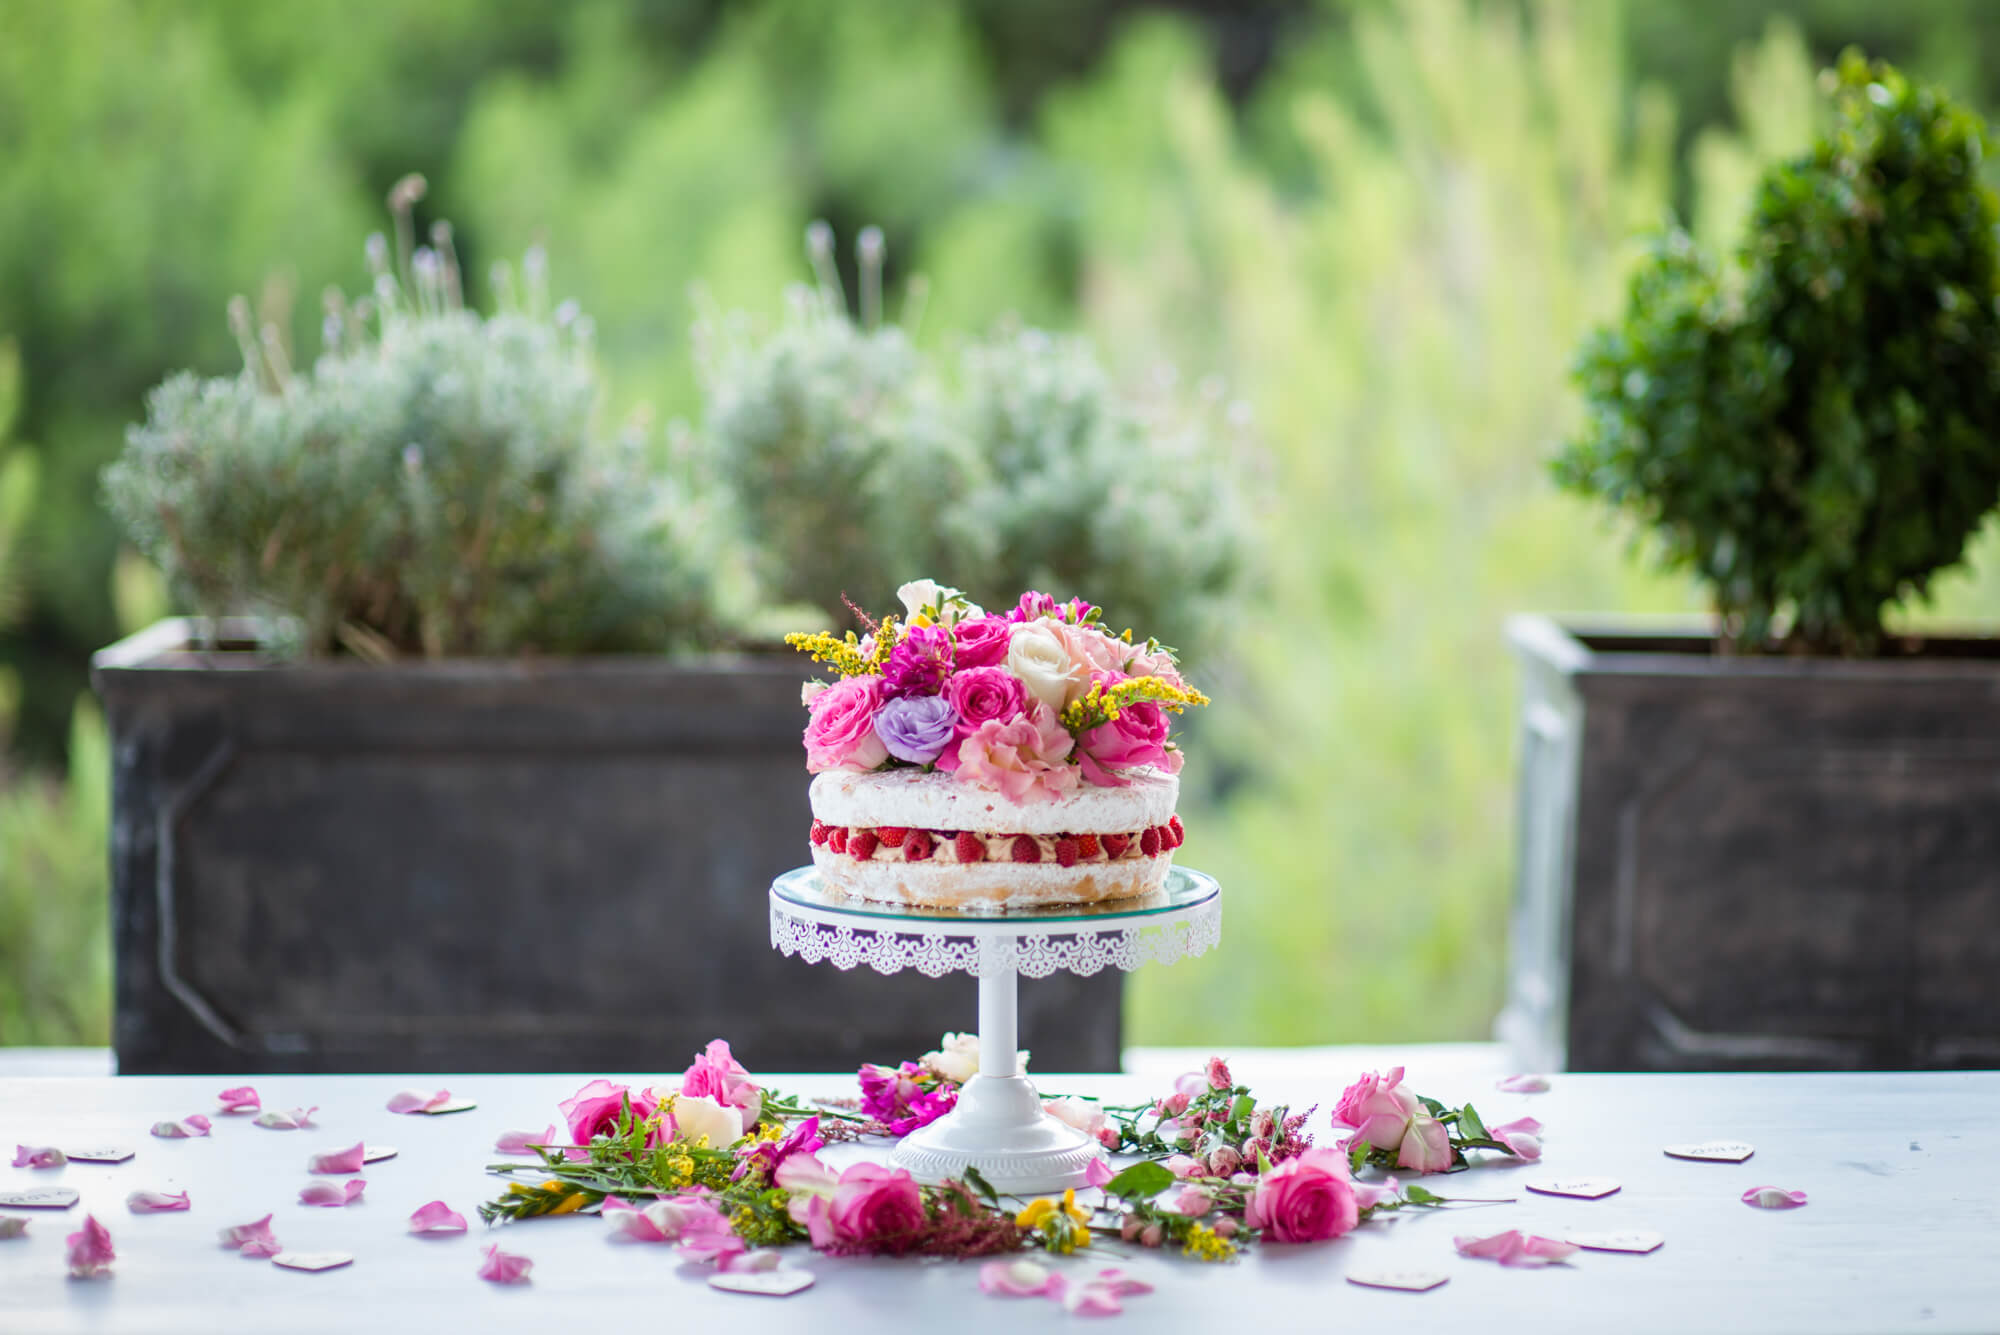 wedding cake victoria spong rasberry cake colourful flowers